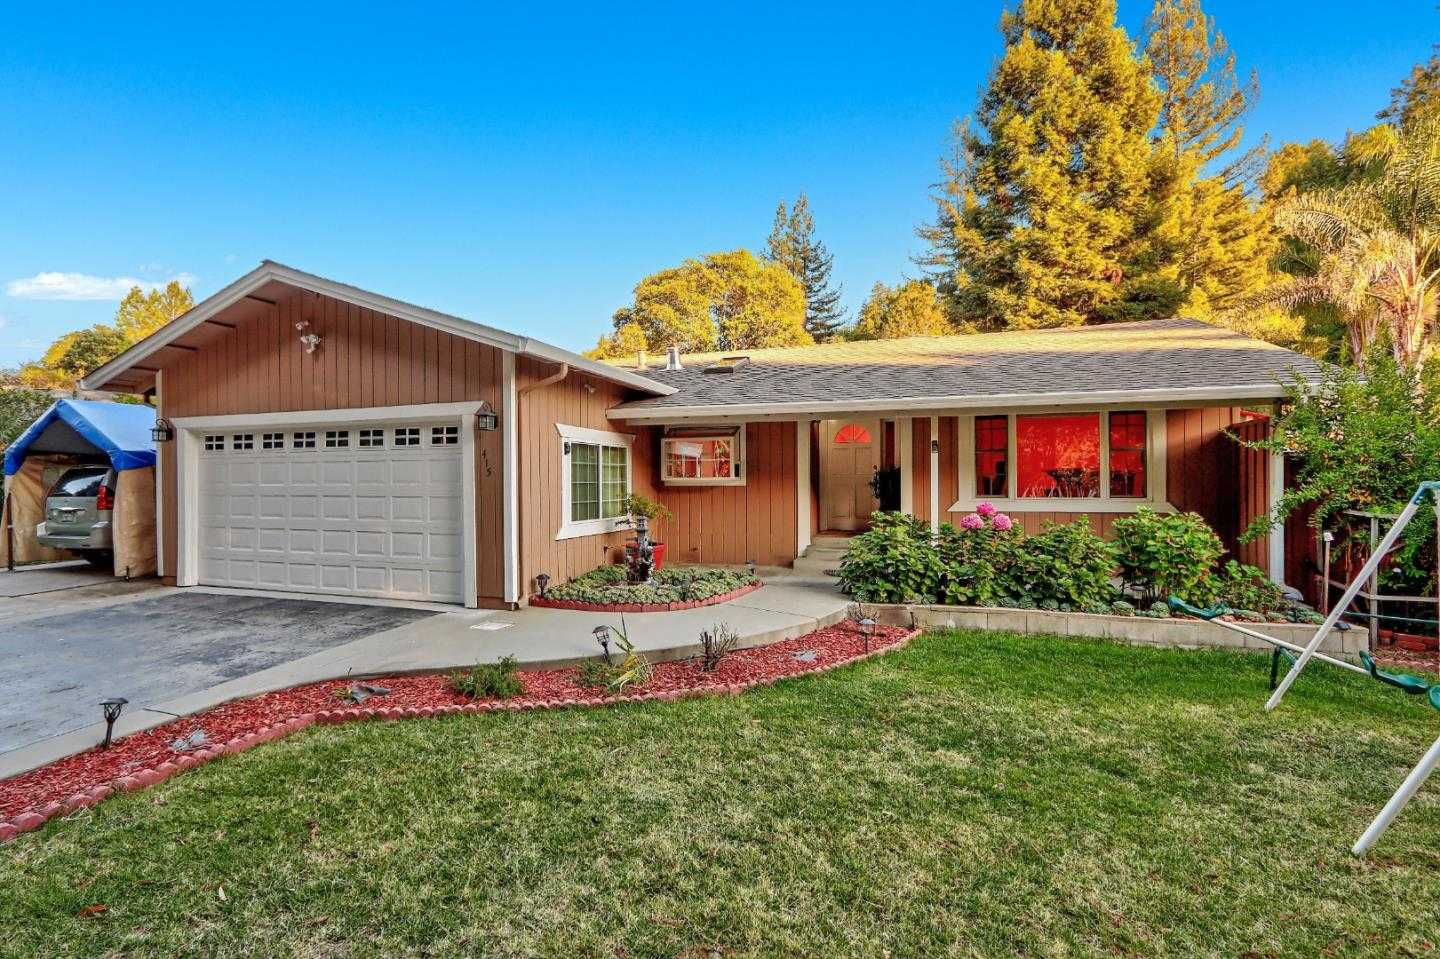 $1,050,000 - 3Br/2Ba -  for Sale in Scotts Valley